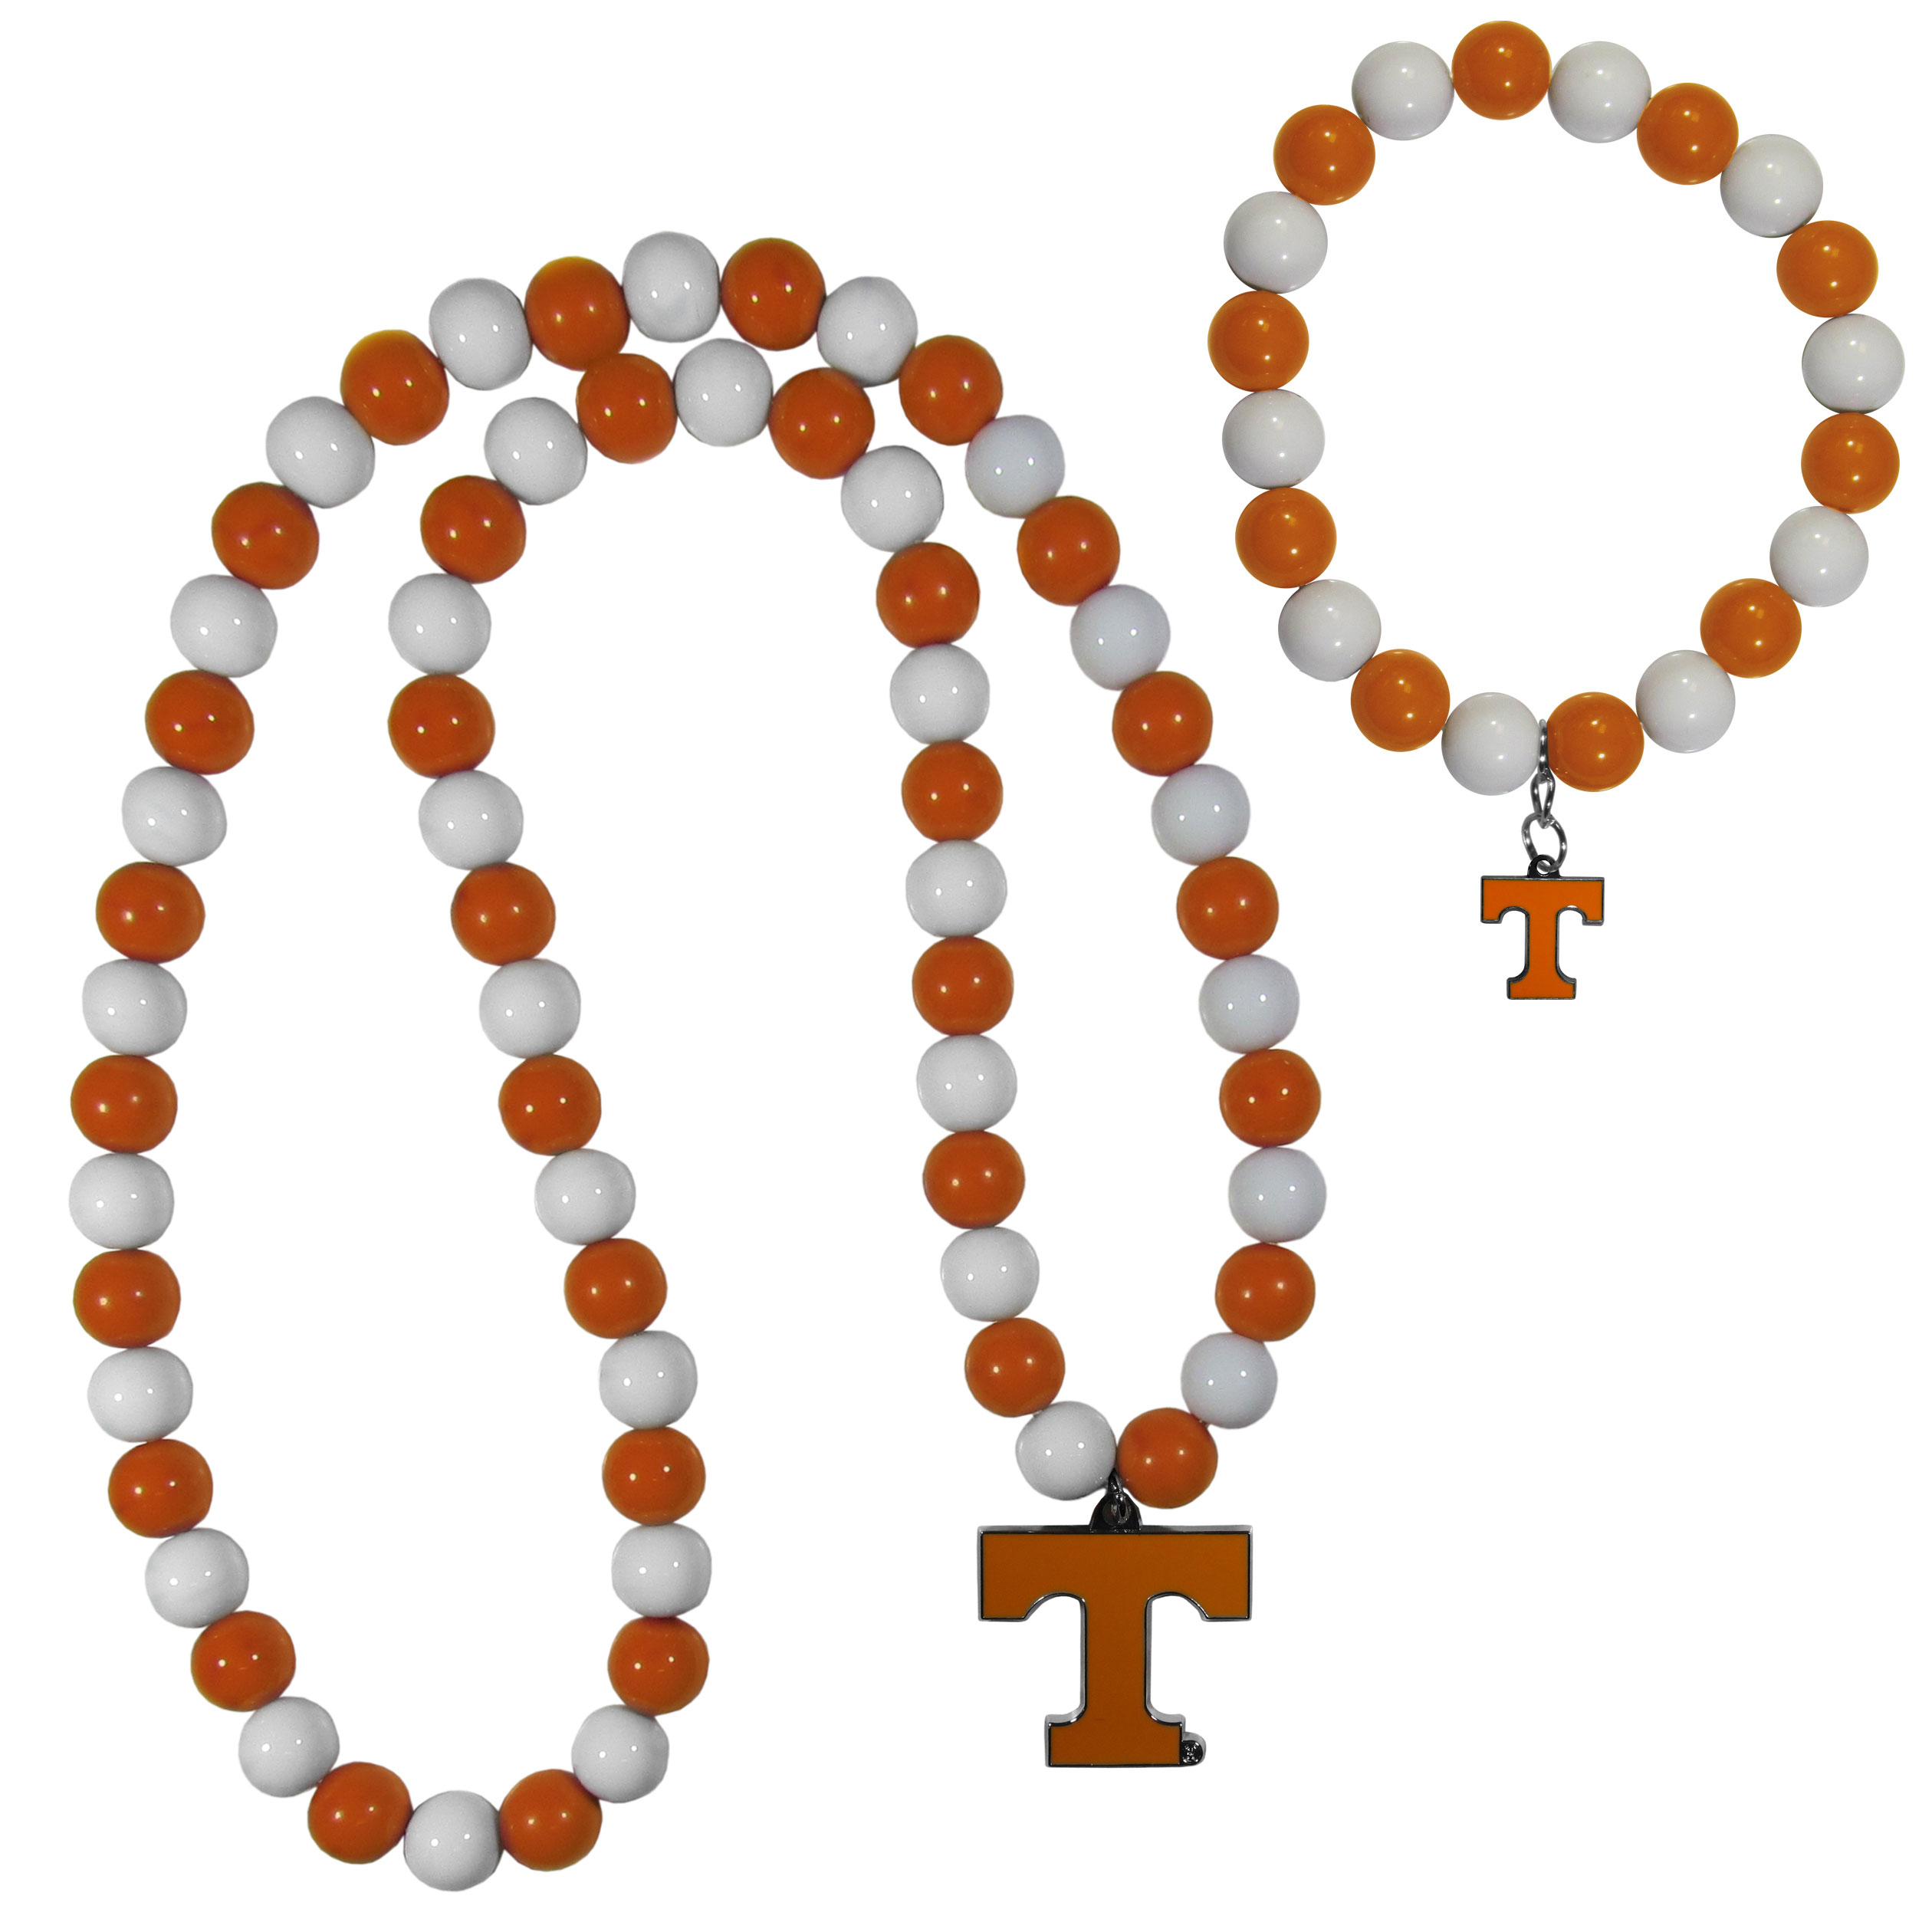 Tennessee Volunteers Fan Bead Necklace and Bracelet Set - These fun and colorful Tennessee Volunteers fan bead jewelry pieces are an eyecatching way to show off your team spirit. The striking necklace is a 24 inch string of alternating team colored beads with a large team pendant. The mathcing bracelet has alternating team colored beads on a stretch cord and features a matching team charm.